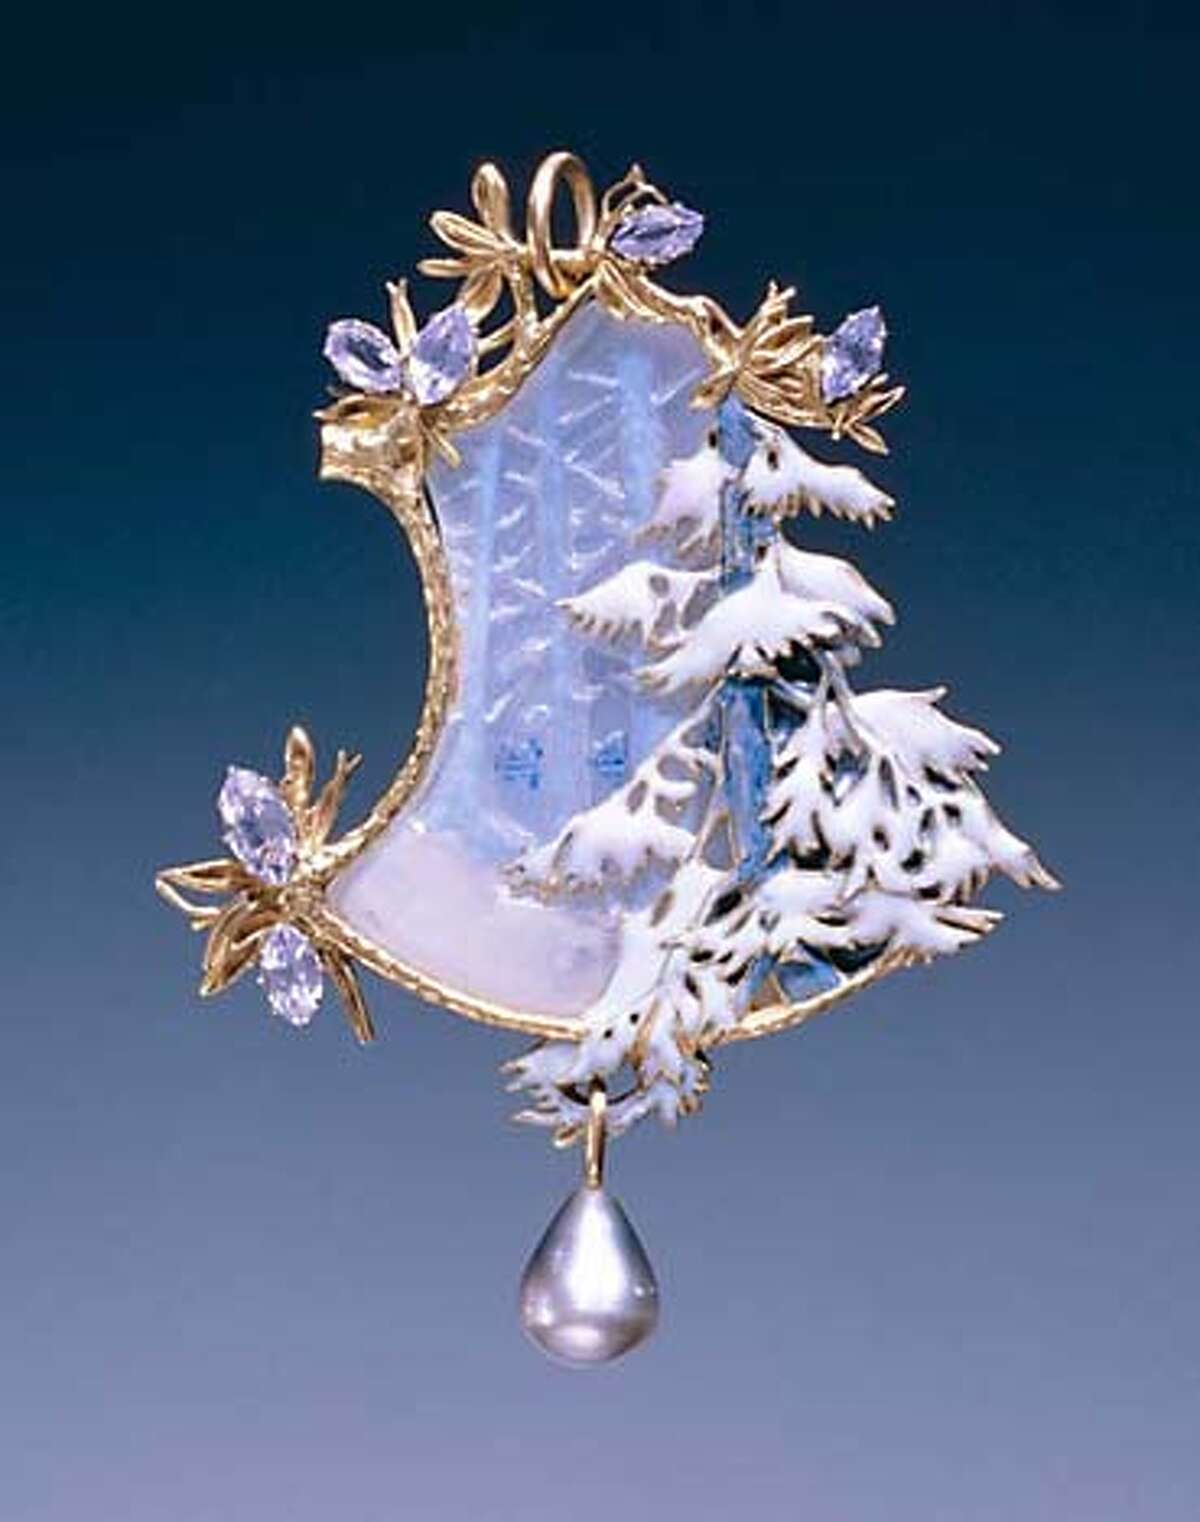 Winter Landscape, c. 1899�1900 Lalique 18K gold, opaque enamel, black pearl, glass L: 8.5 cm W: 6.5 cm Private Collection, New York On view in Masterpieces of French Jewelry Legion of Honor, San Francisco 10 February�10 June 2007